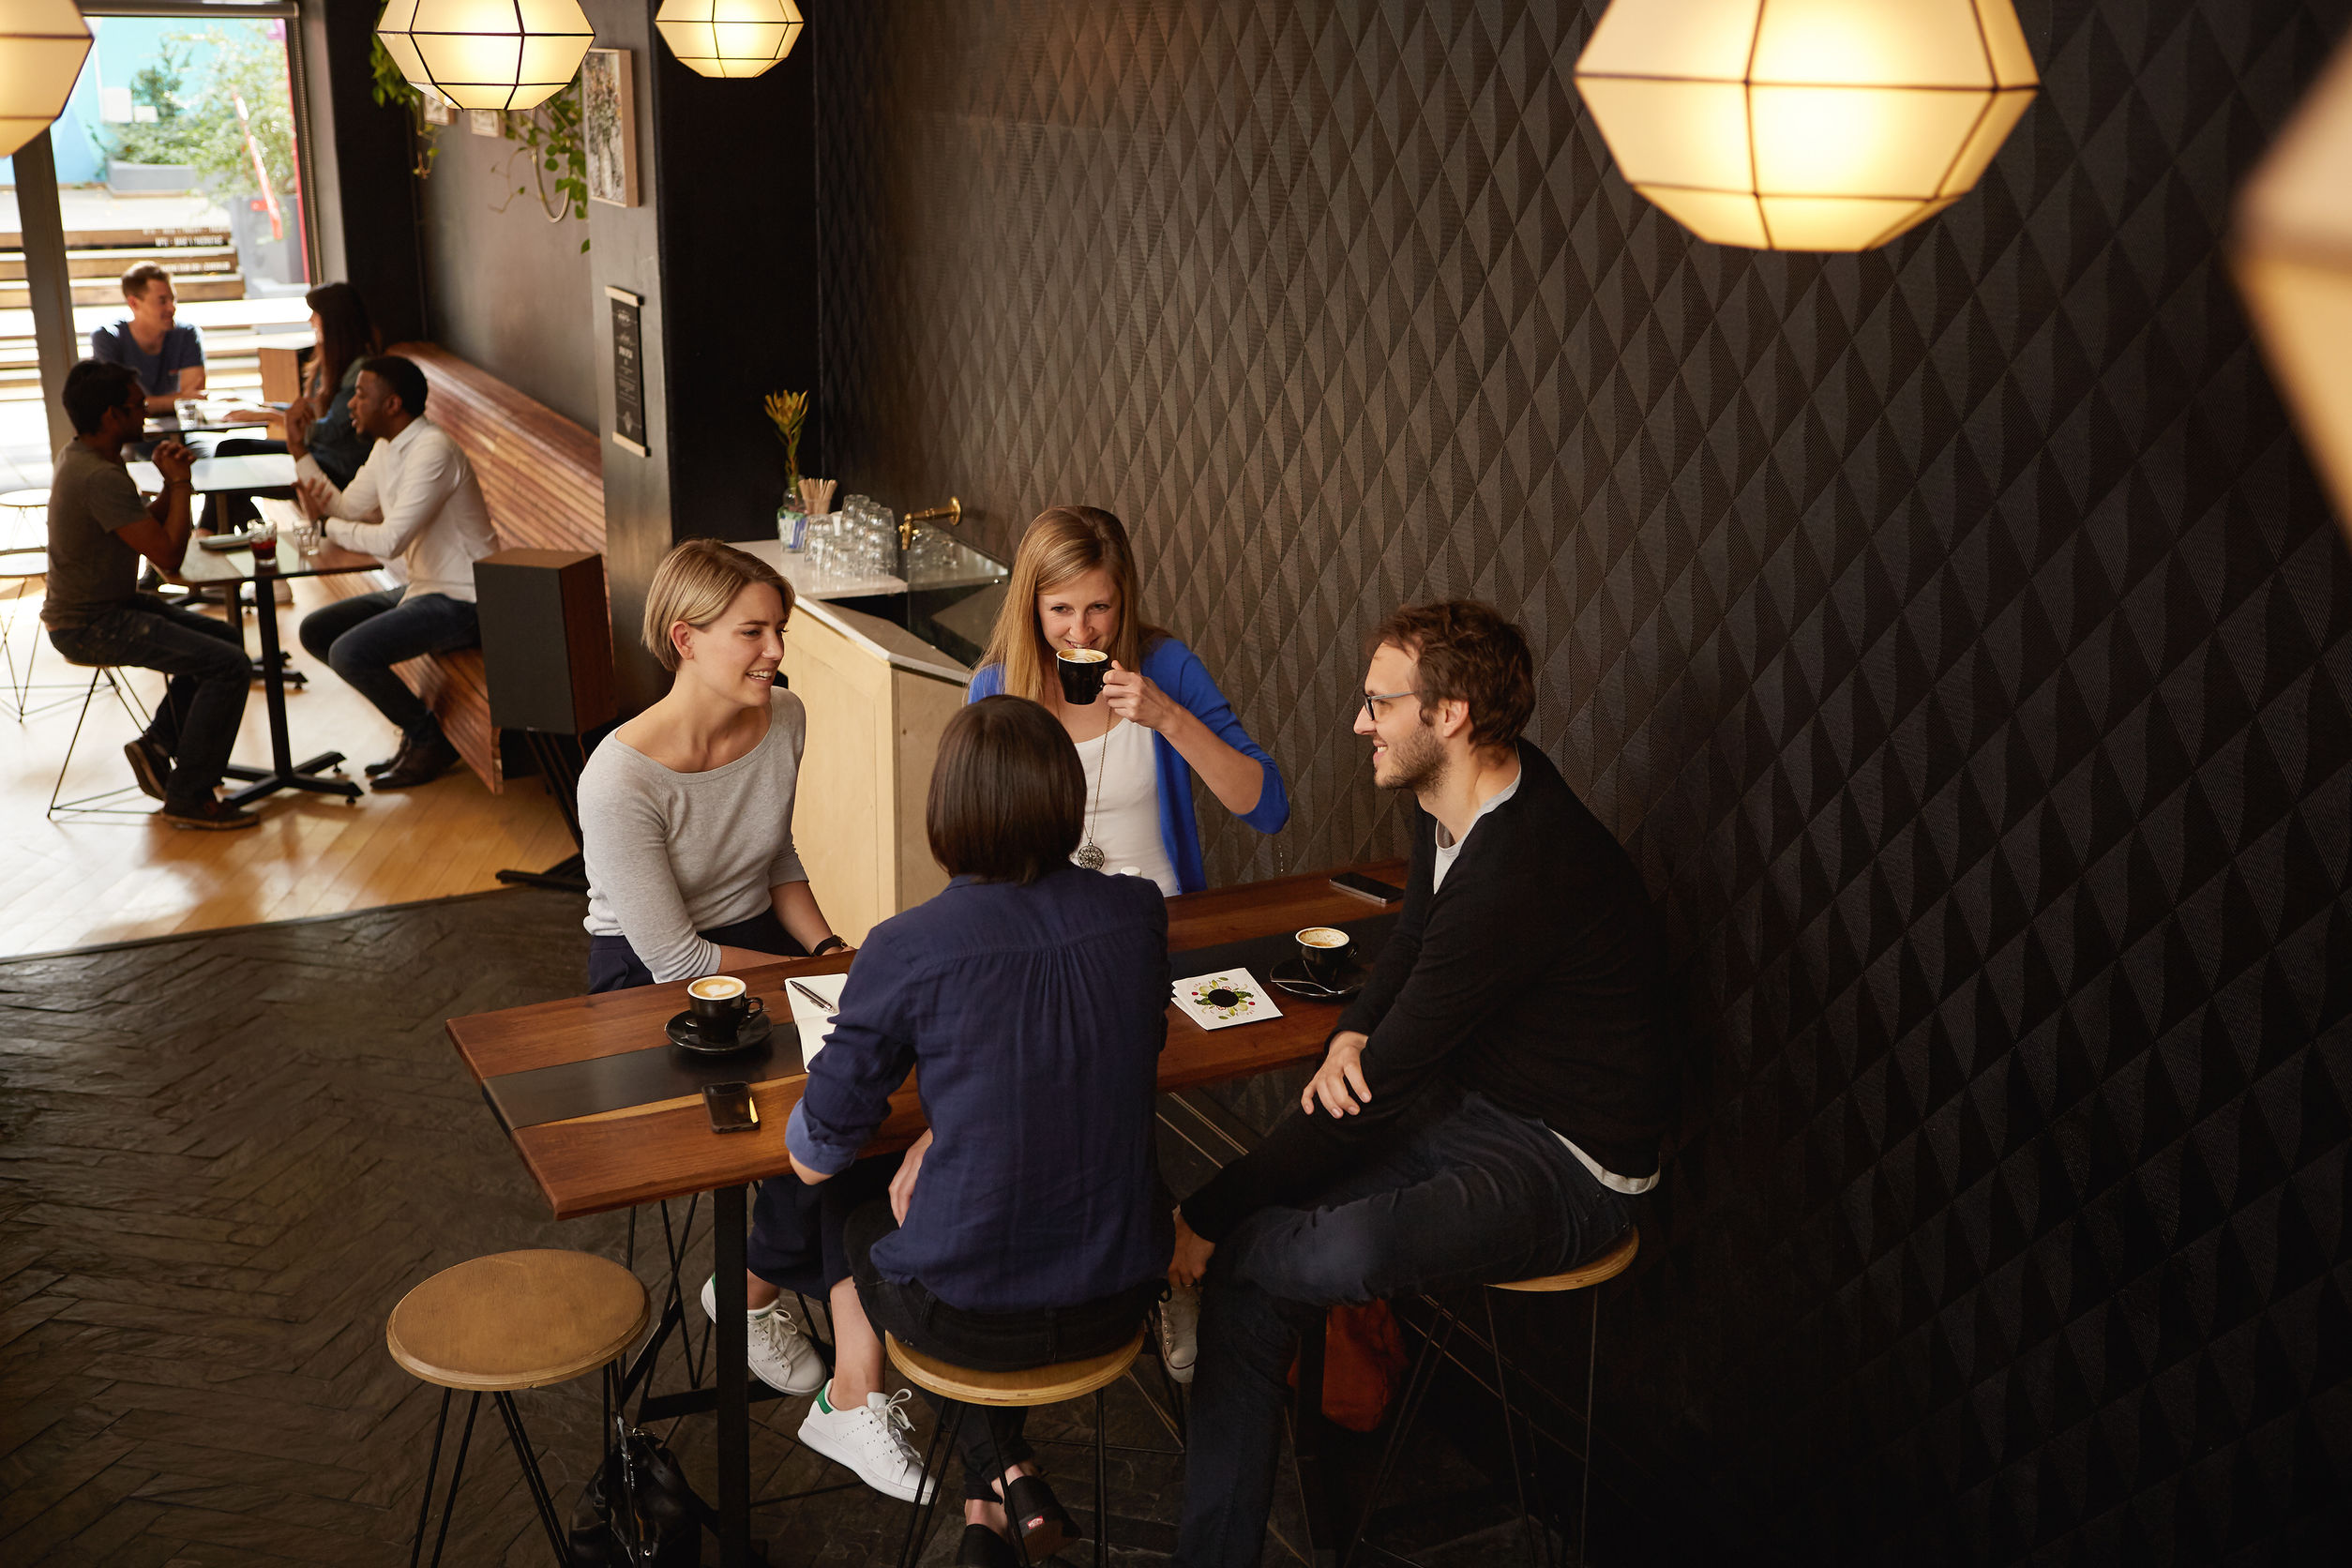 What to expect from your match meeting - Tips for Surrogates